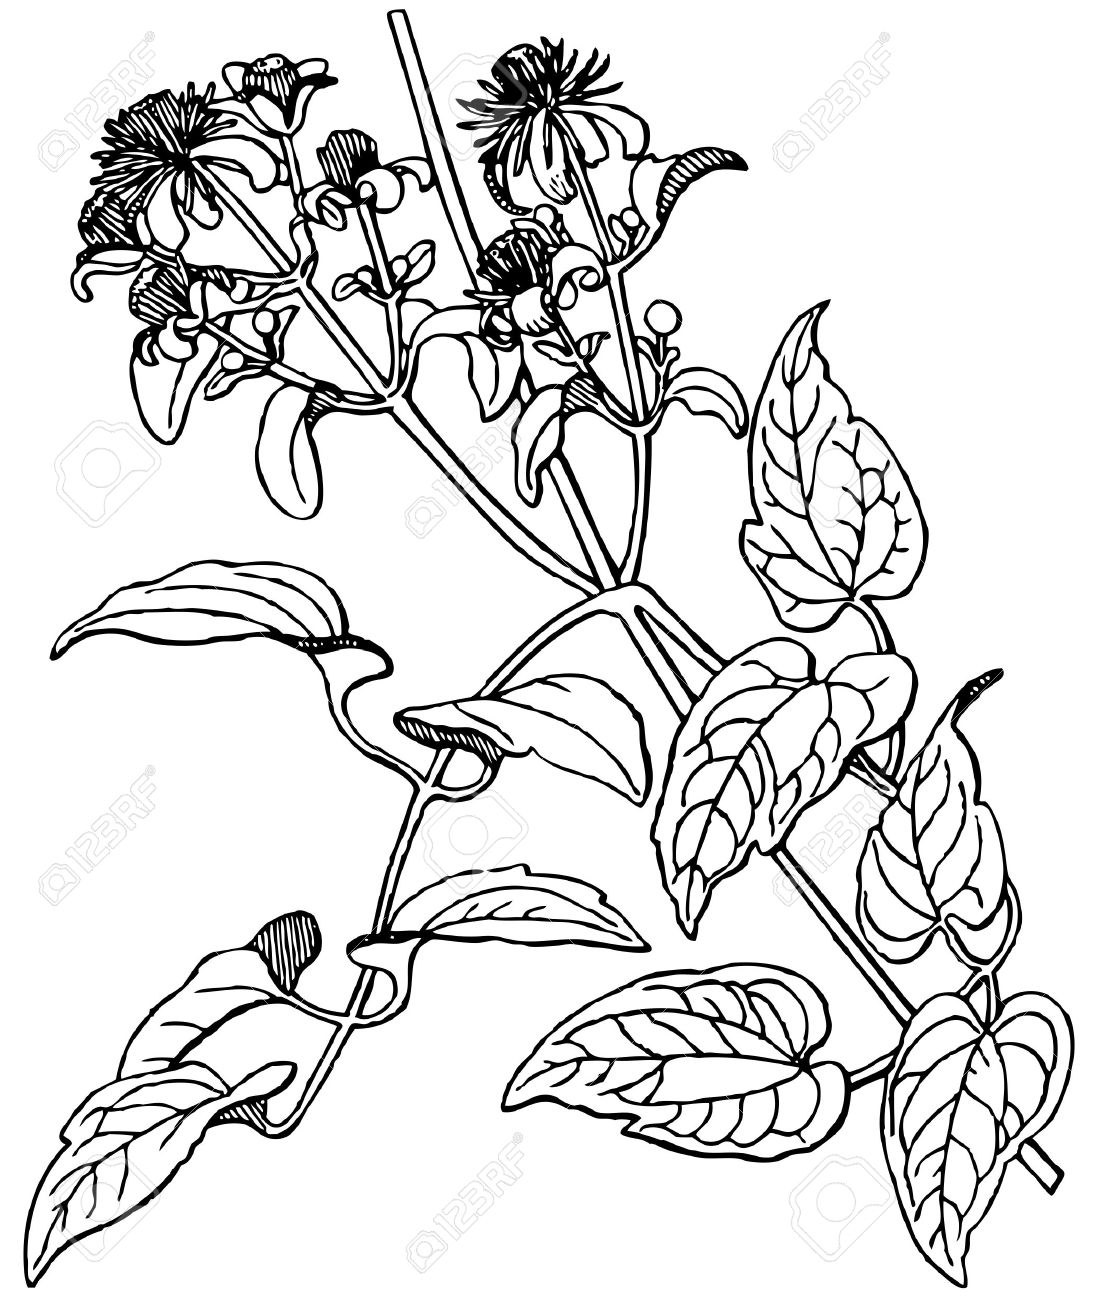 Plant Clematis Vitalba Royalty Free Cliparts, Vectors, And Stock.